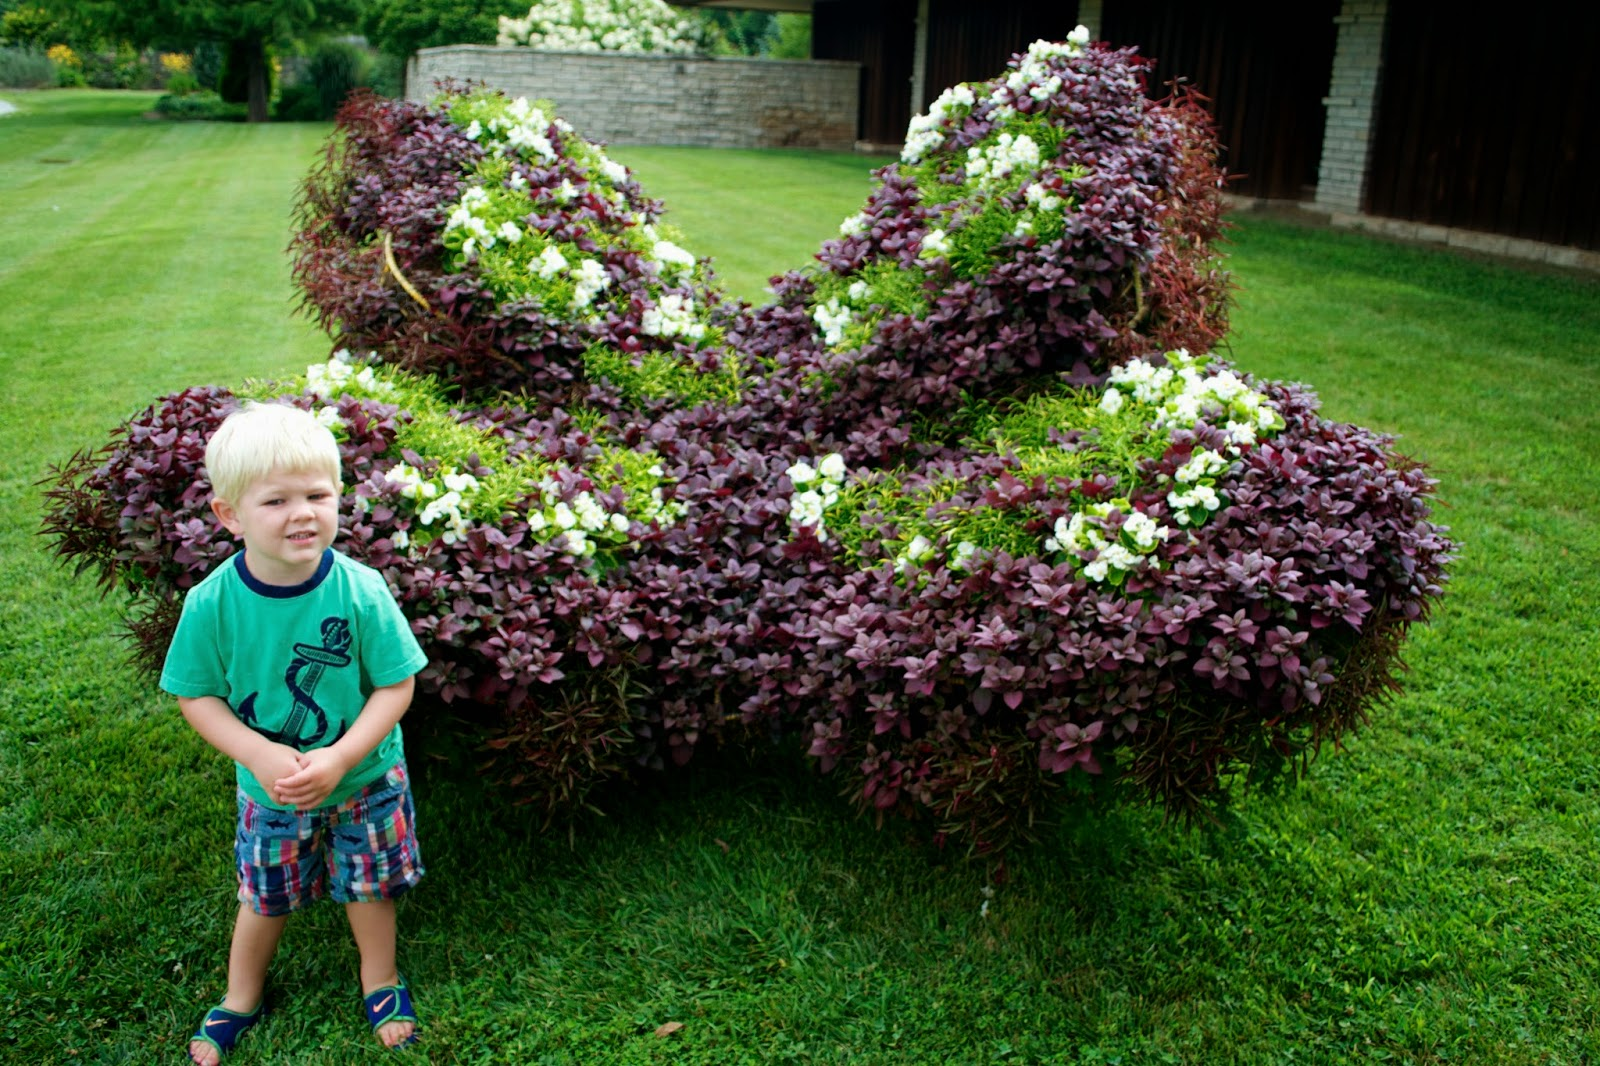 Lucky For Marcus And Me, Marcusu0027 Grandparents Know Of My Love Affair With  Butterflies. While We Were Visiting We Took A Trip To The Powell Gardens,  ...